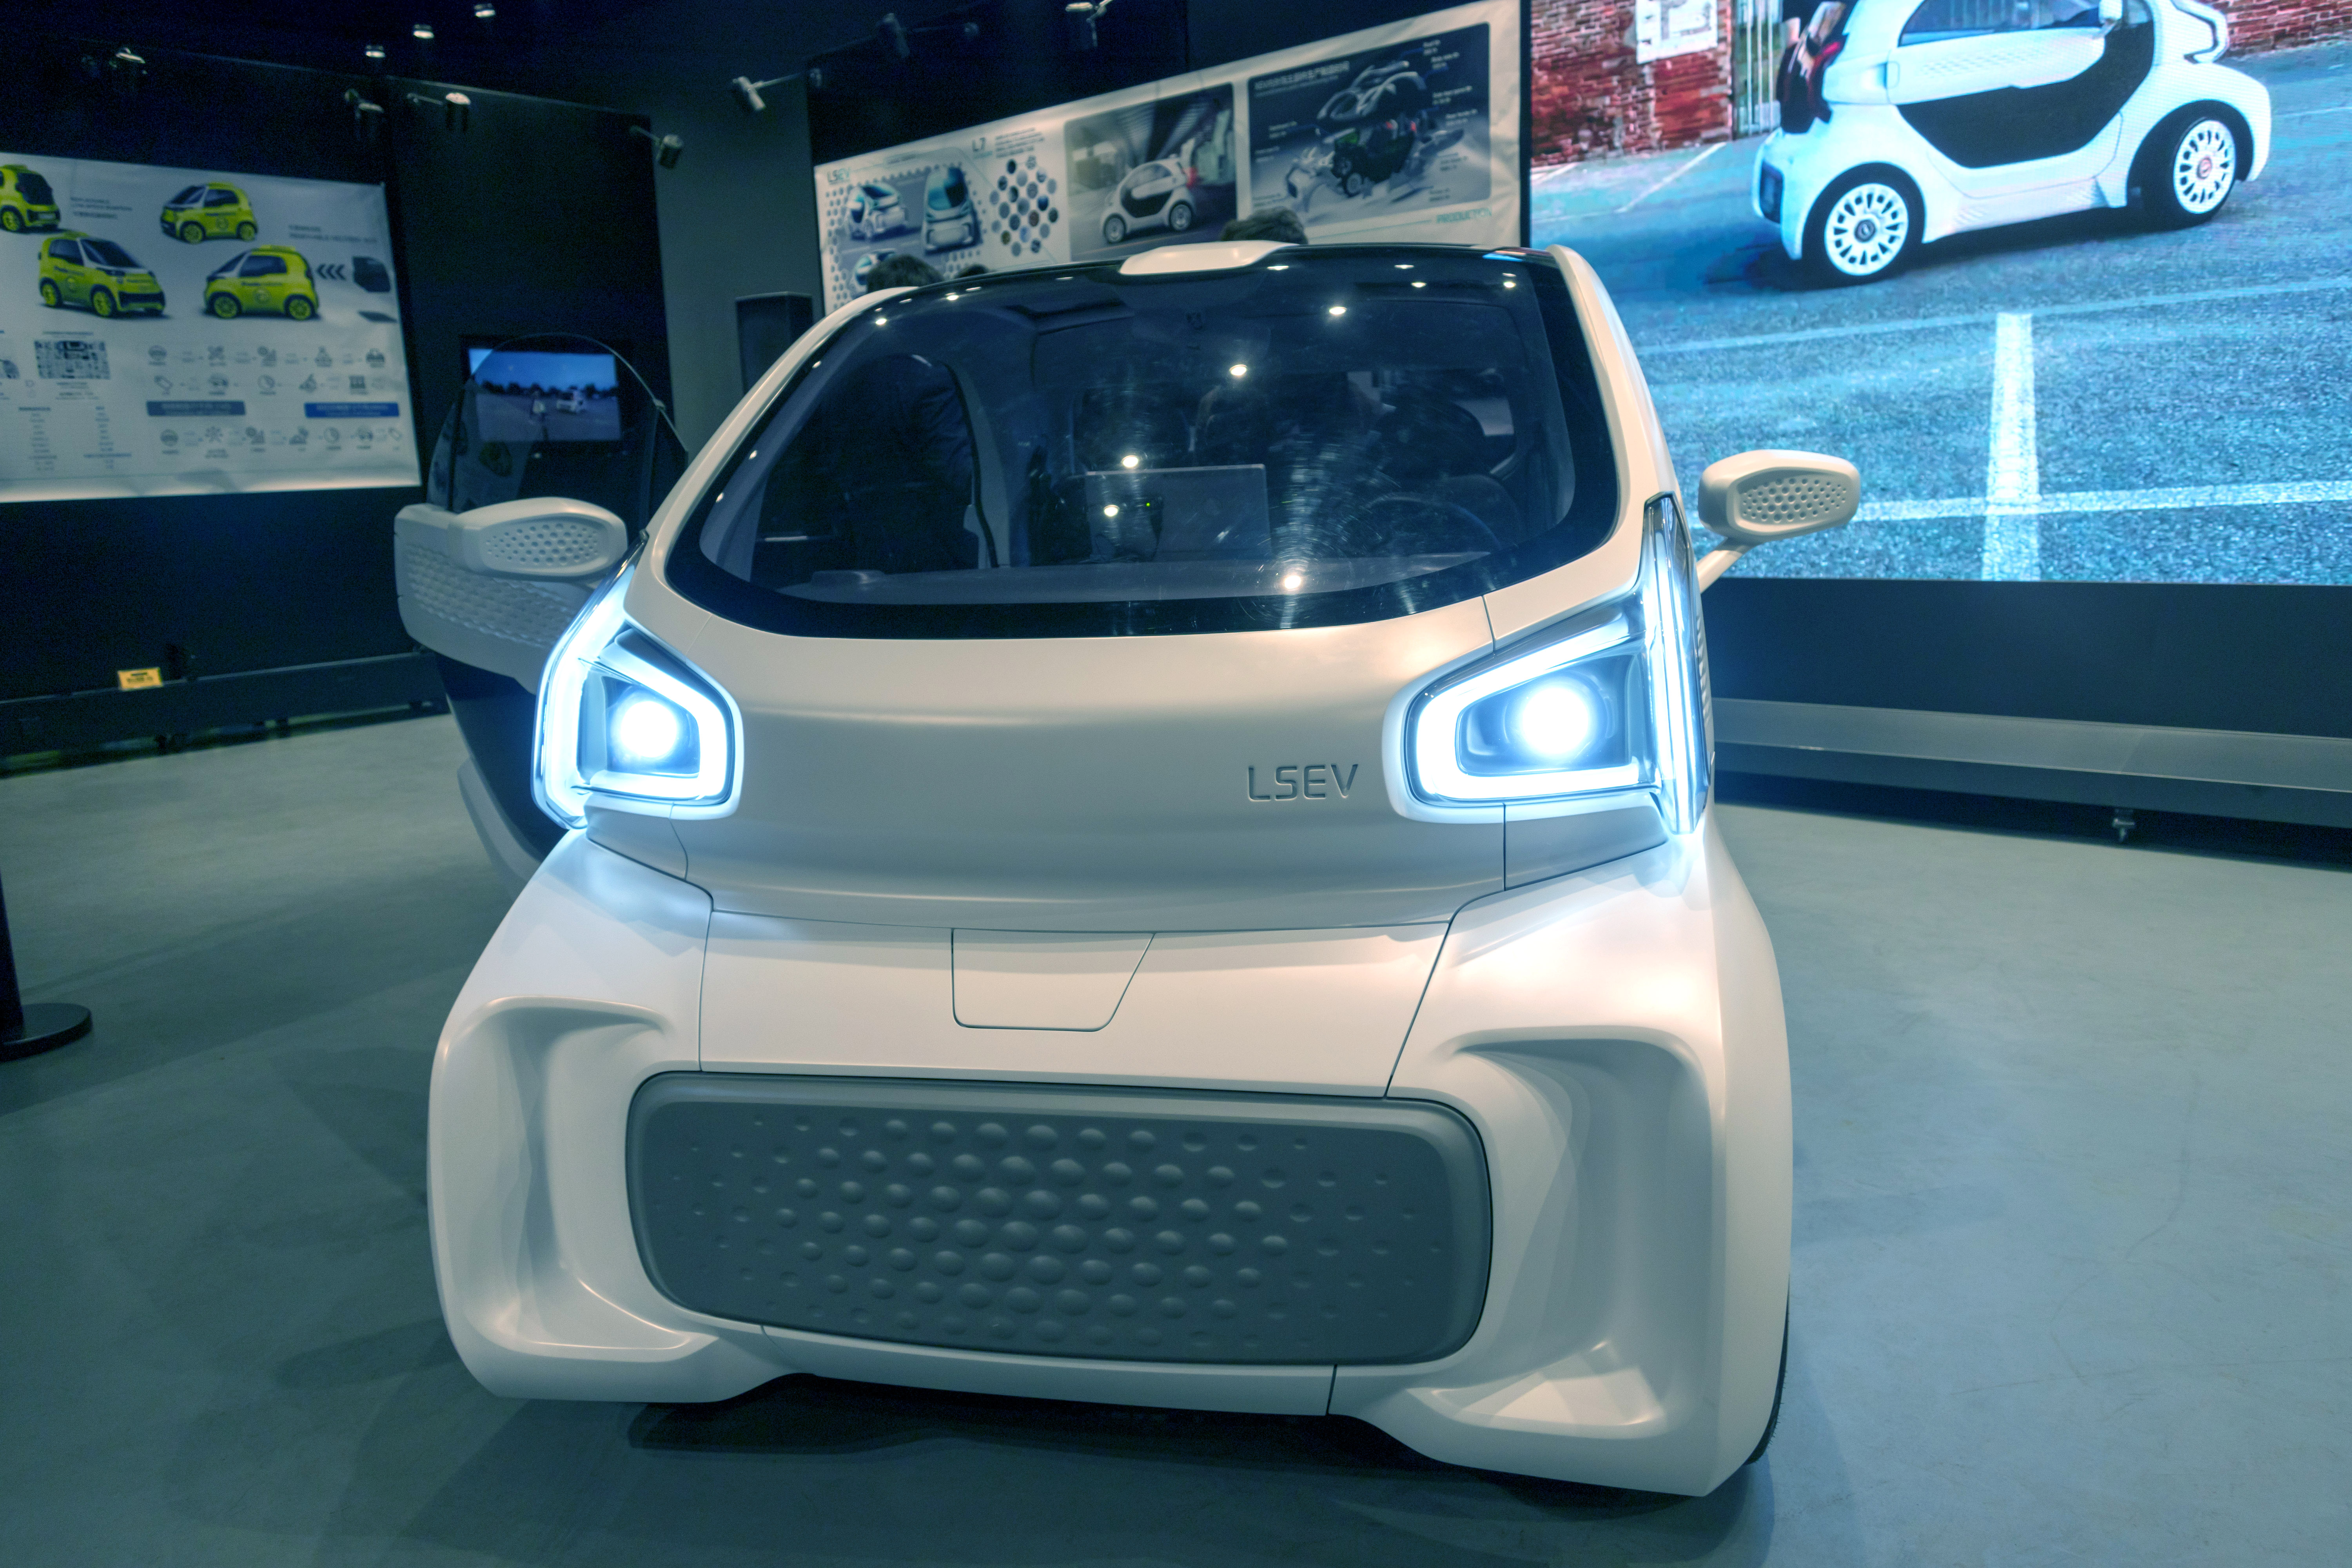 3D-printed Electric Car LSEV on display in Shanghai